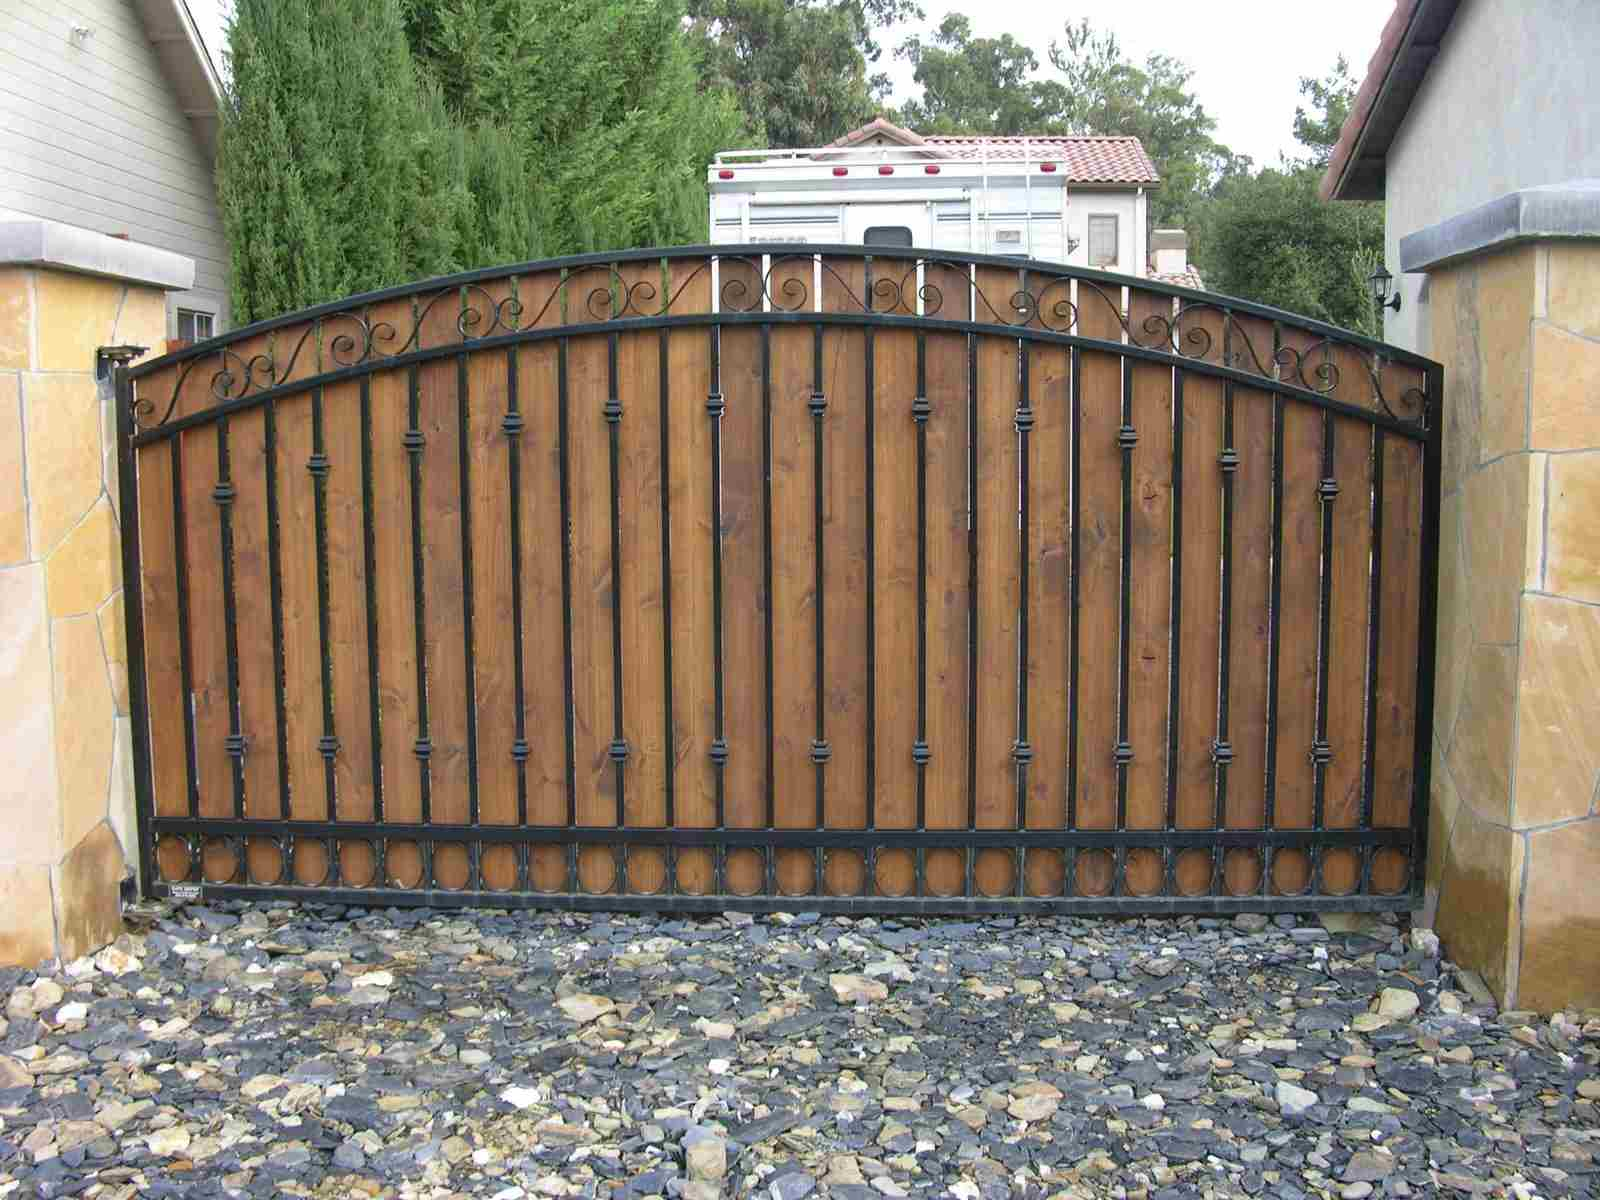 A timber infill driveway gate with a wrought iron finish